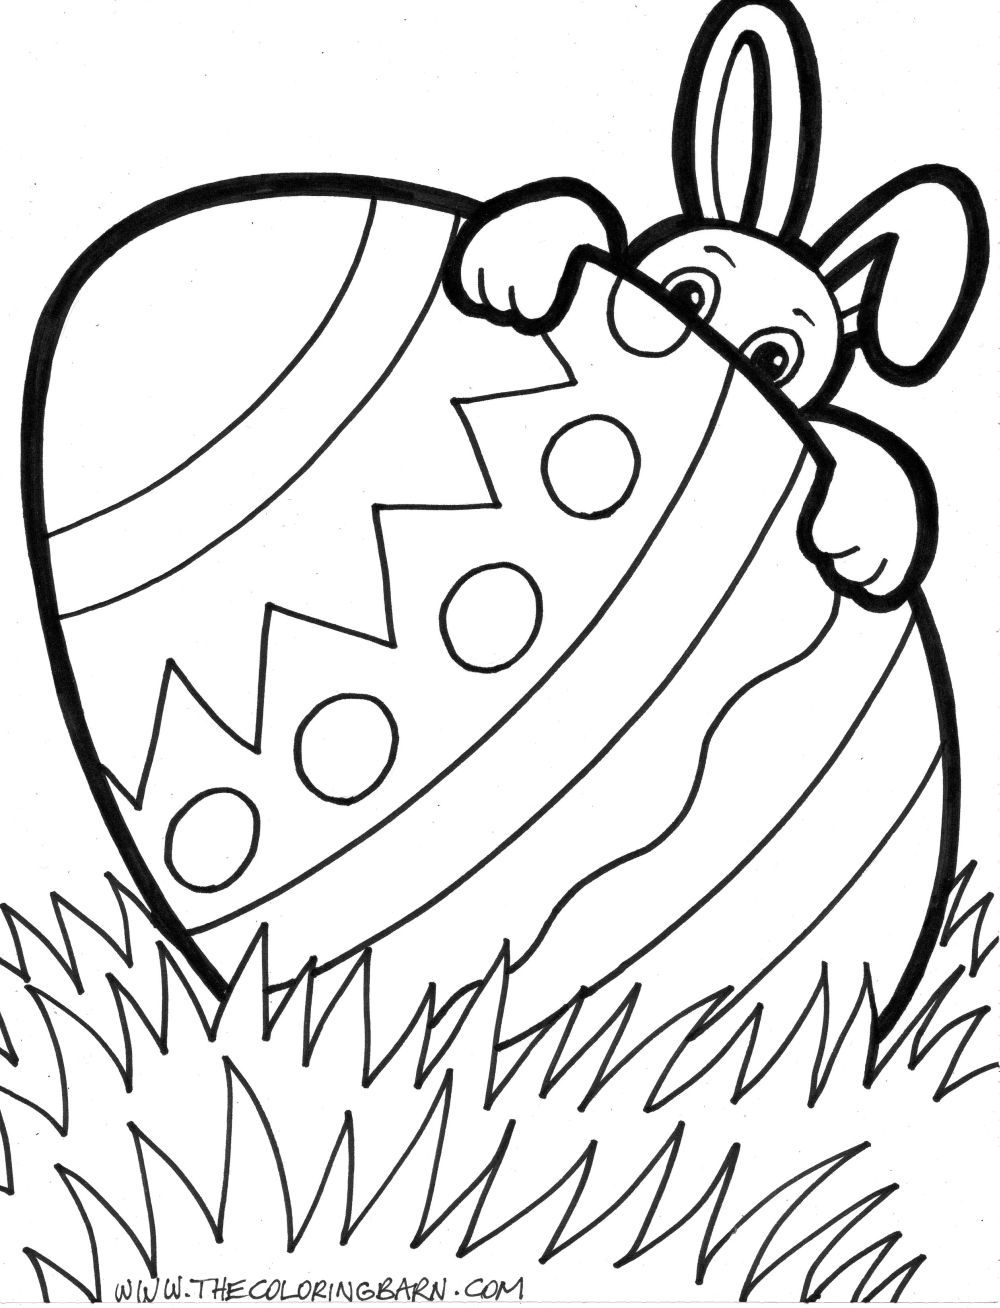 easter printable coloring pages the coloring barn printable - Easter Printable Coloring Pages